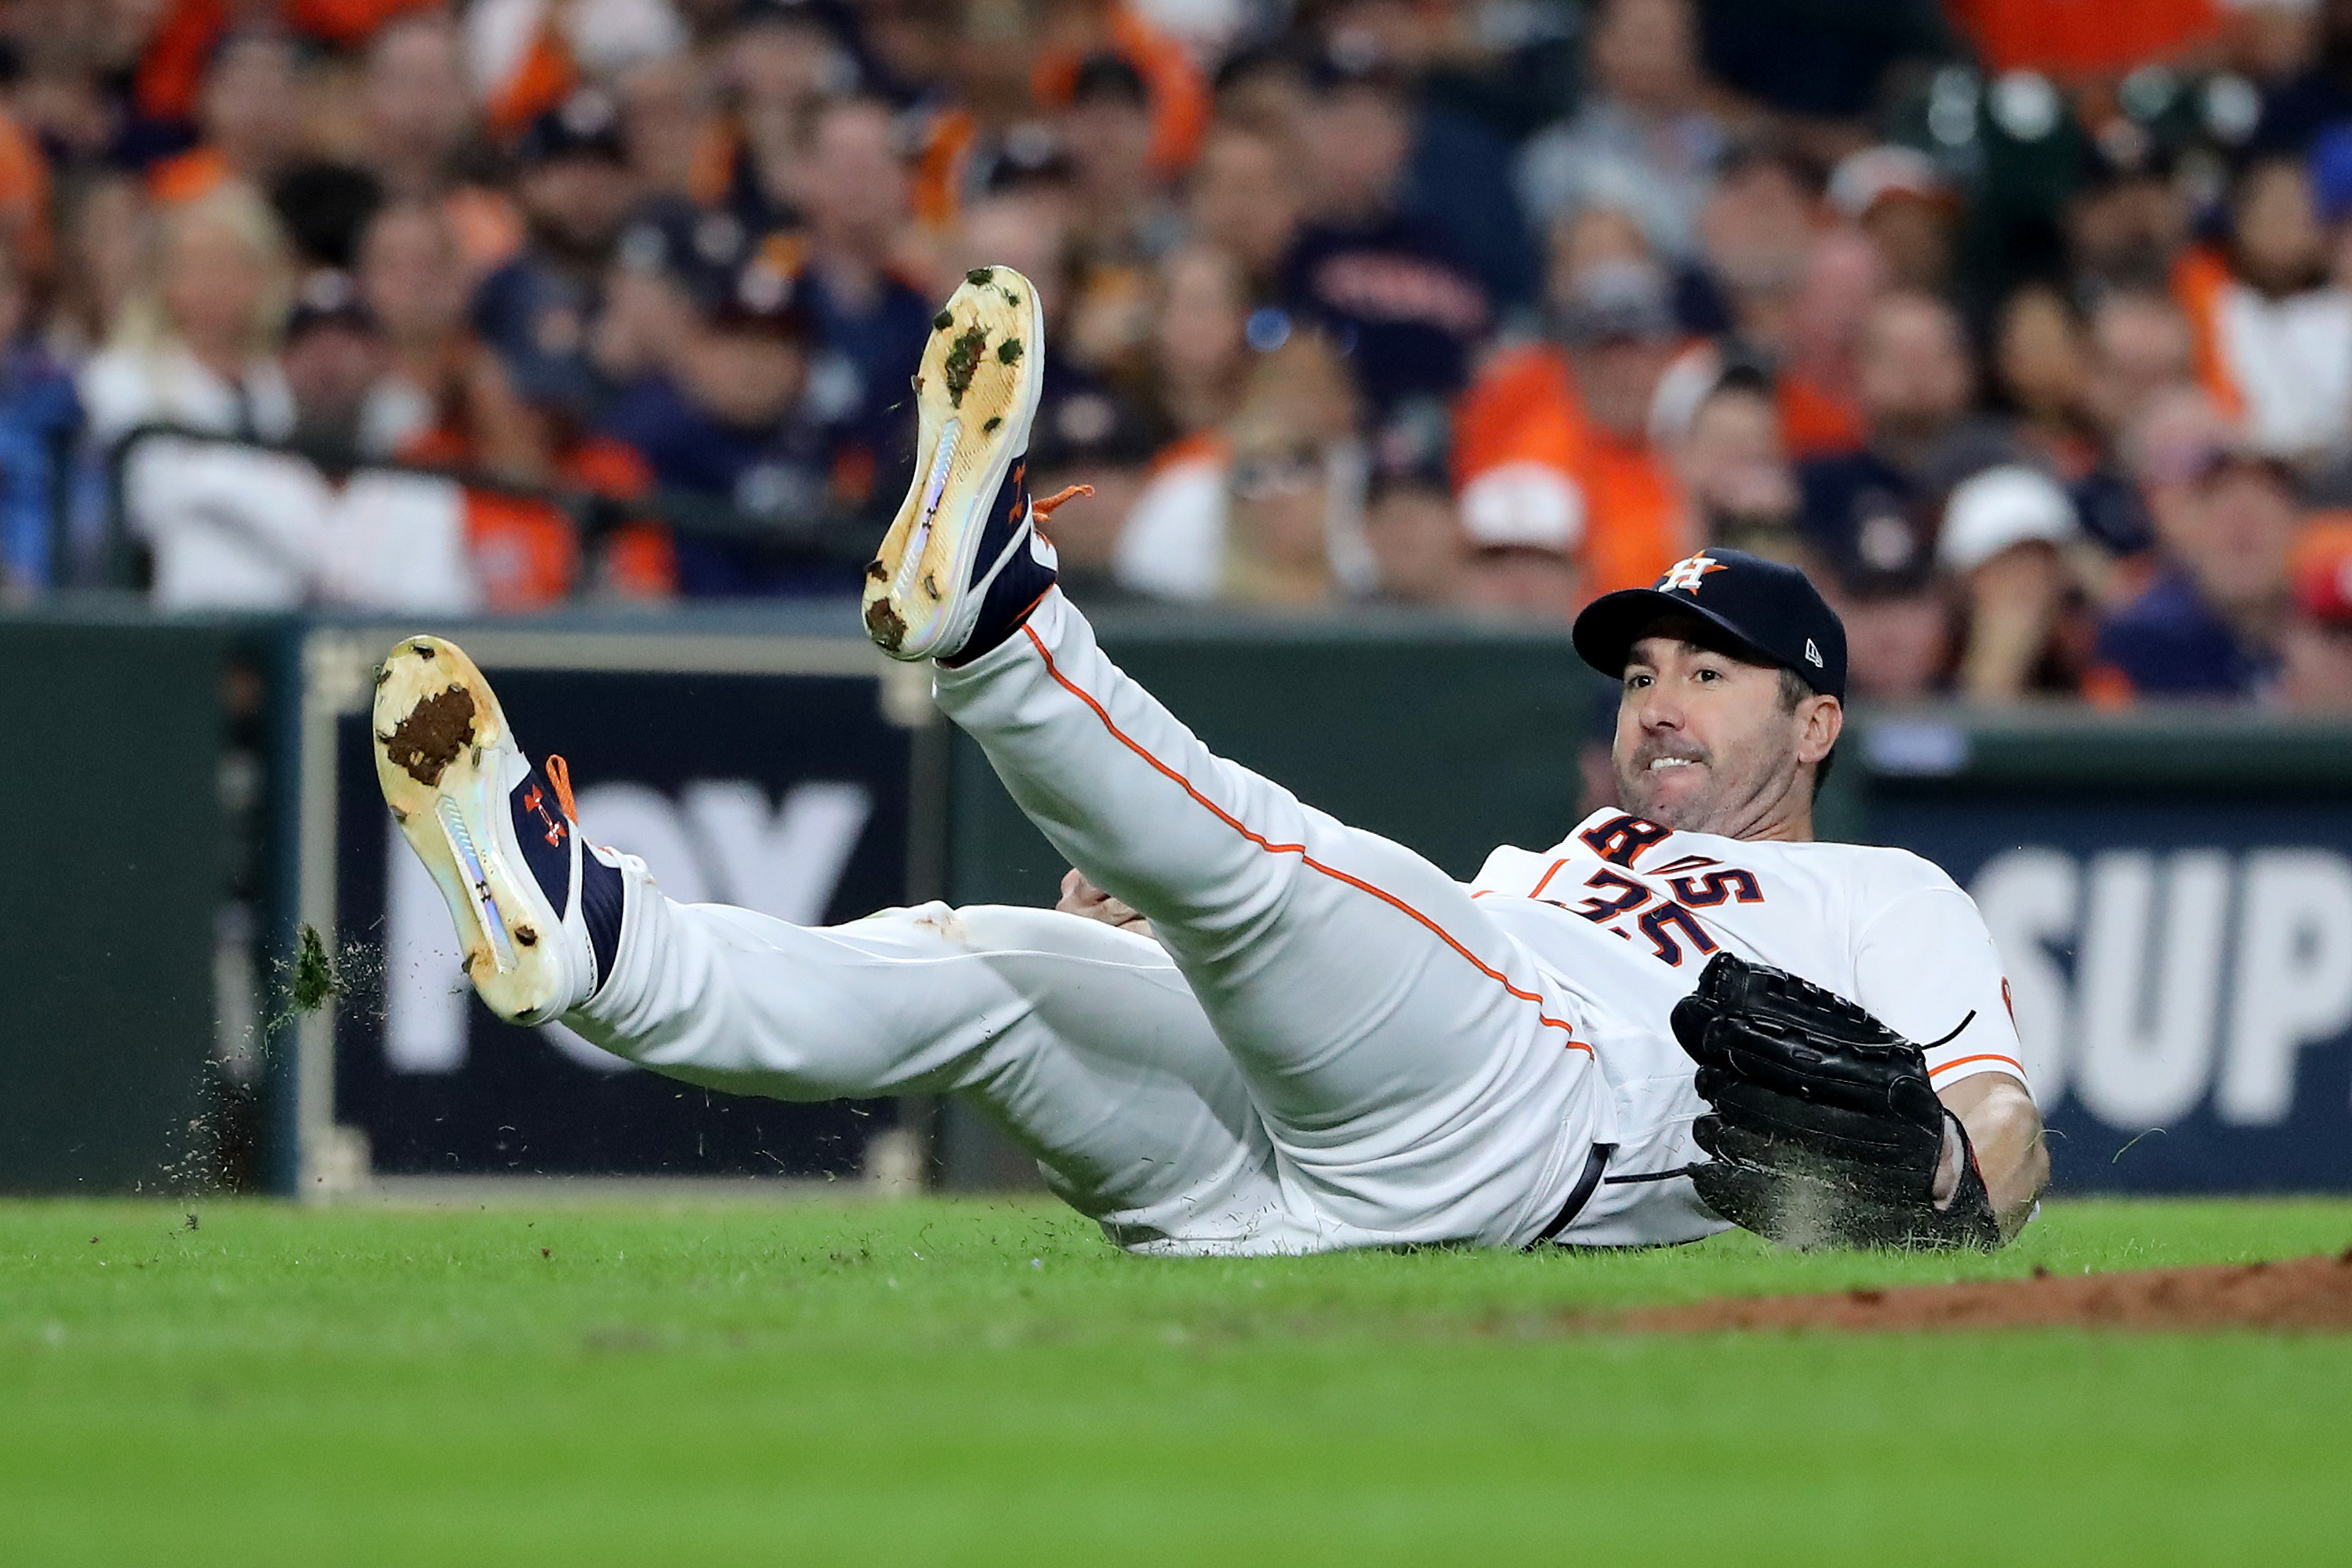 Justin Verlander of the Houston Astros fails to field a ground ball against the Washington Nationals during the fourth inning in Game Two of the 2019 World Series at Minute Maid Park on October 23, 2019 in Houston, Texas.